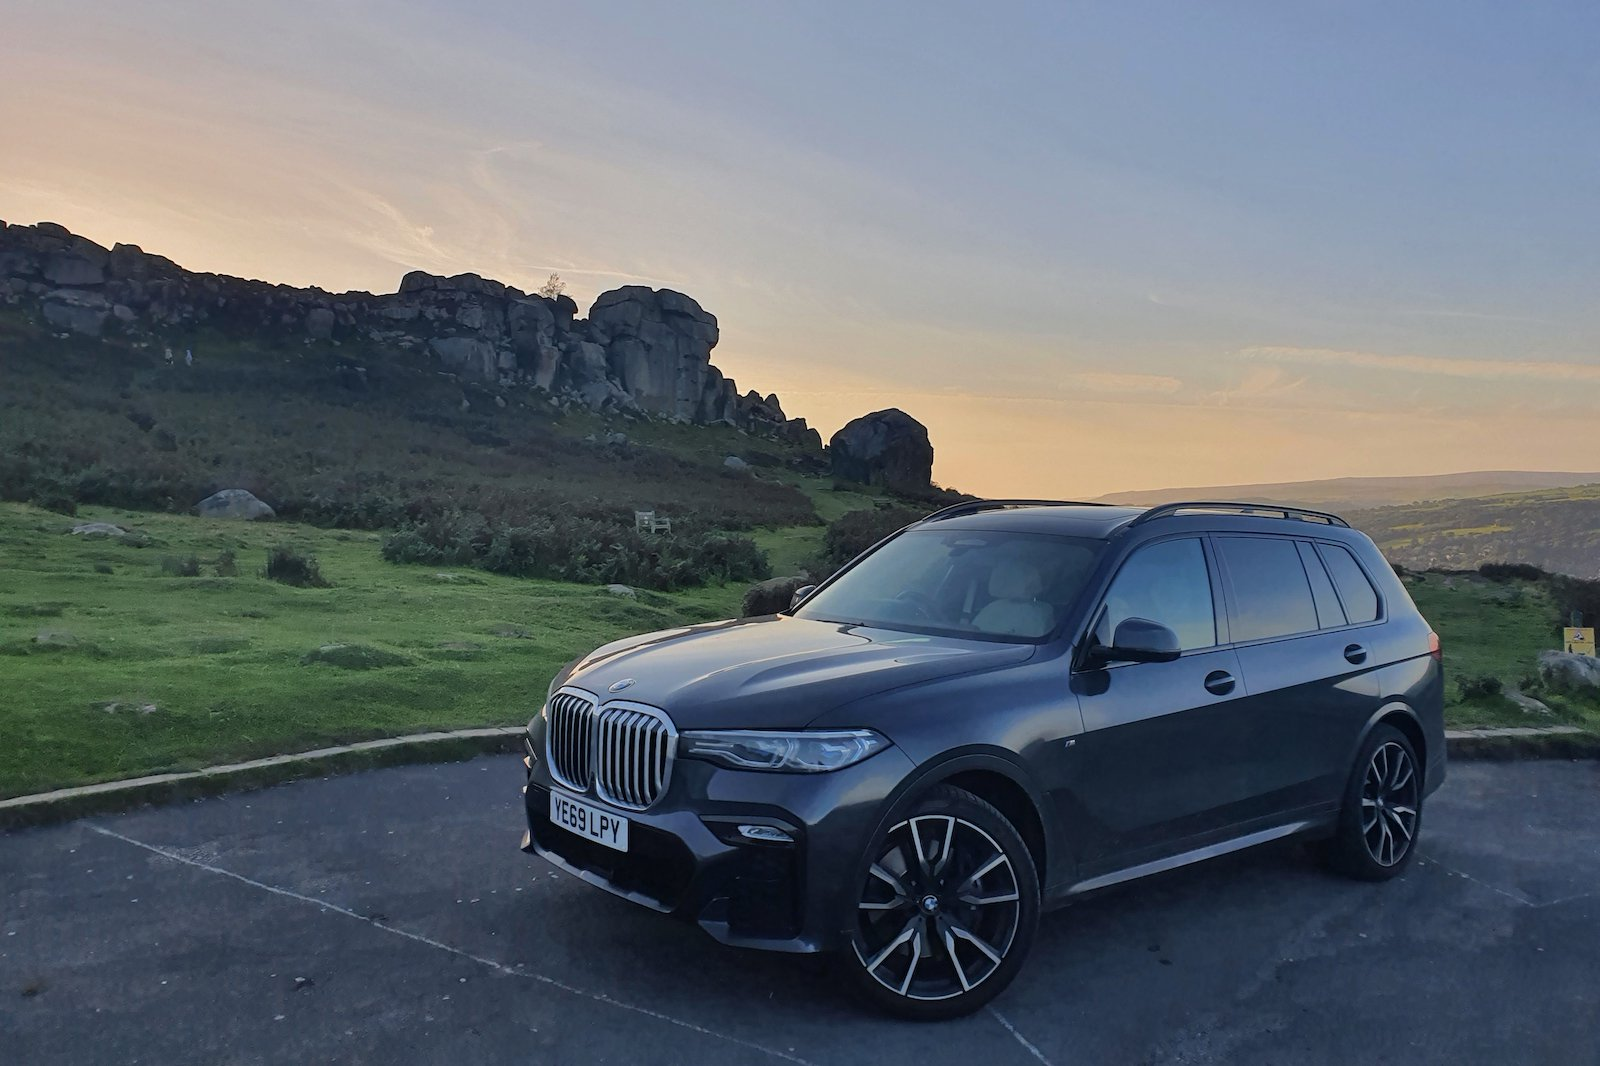 BMW X7 Cow and Calf